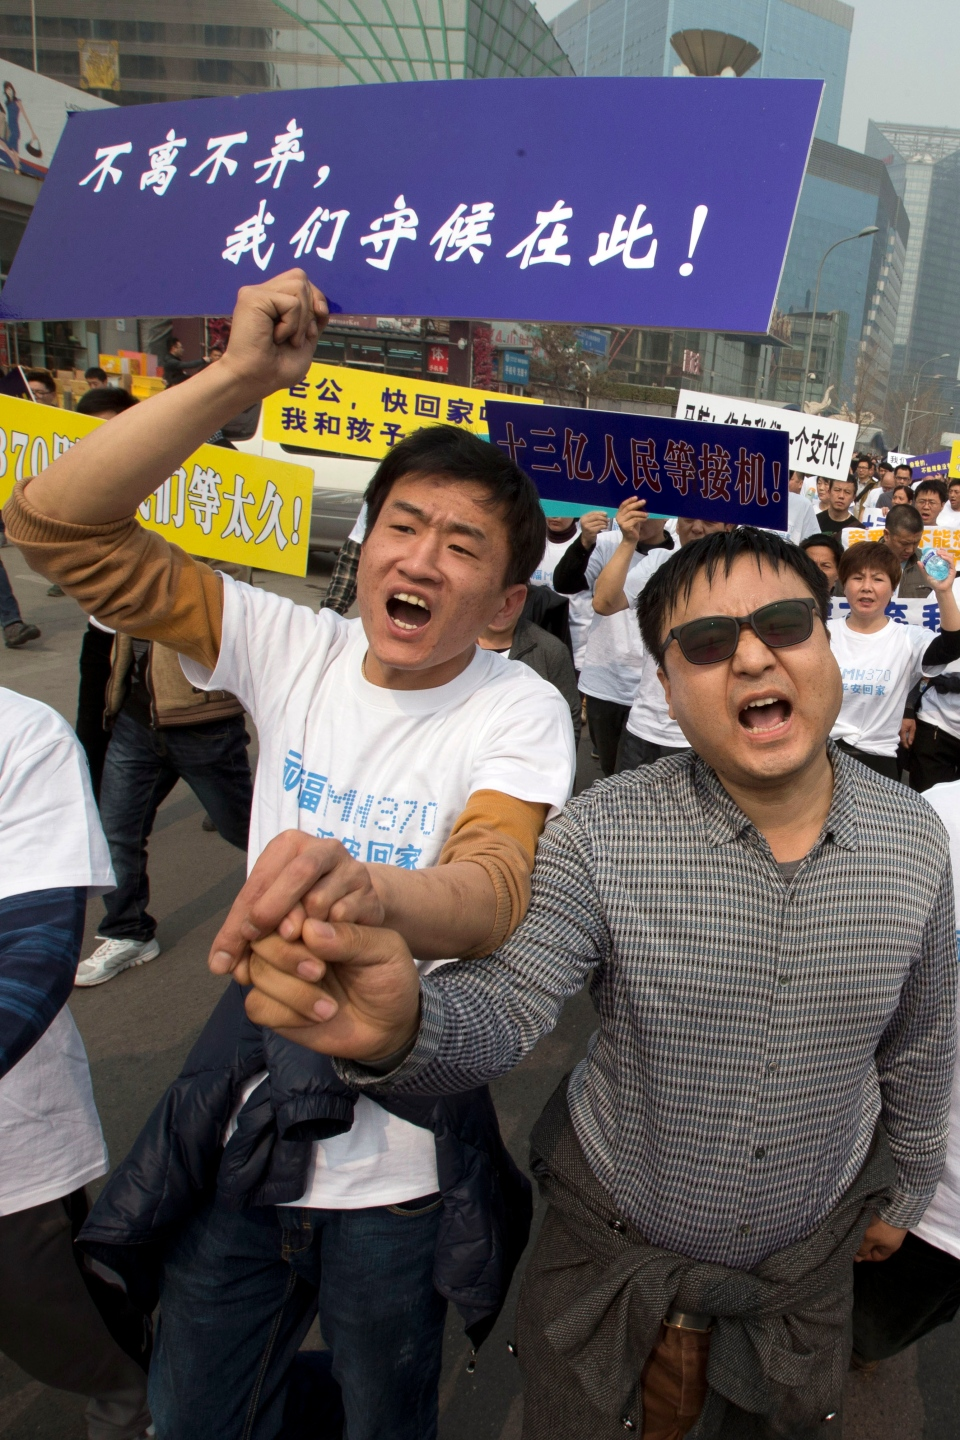 Relatives of Chinese passengers onboard the Malaysia Airlines plane, MH370, protest with placards one of which reads 'We won't leave or ditch you, we will wait right here' as they march towards the Malaysian embassy in Beijing, China on Wednesday, March 25, 2014. (AP / Ng Han Guan)